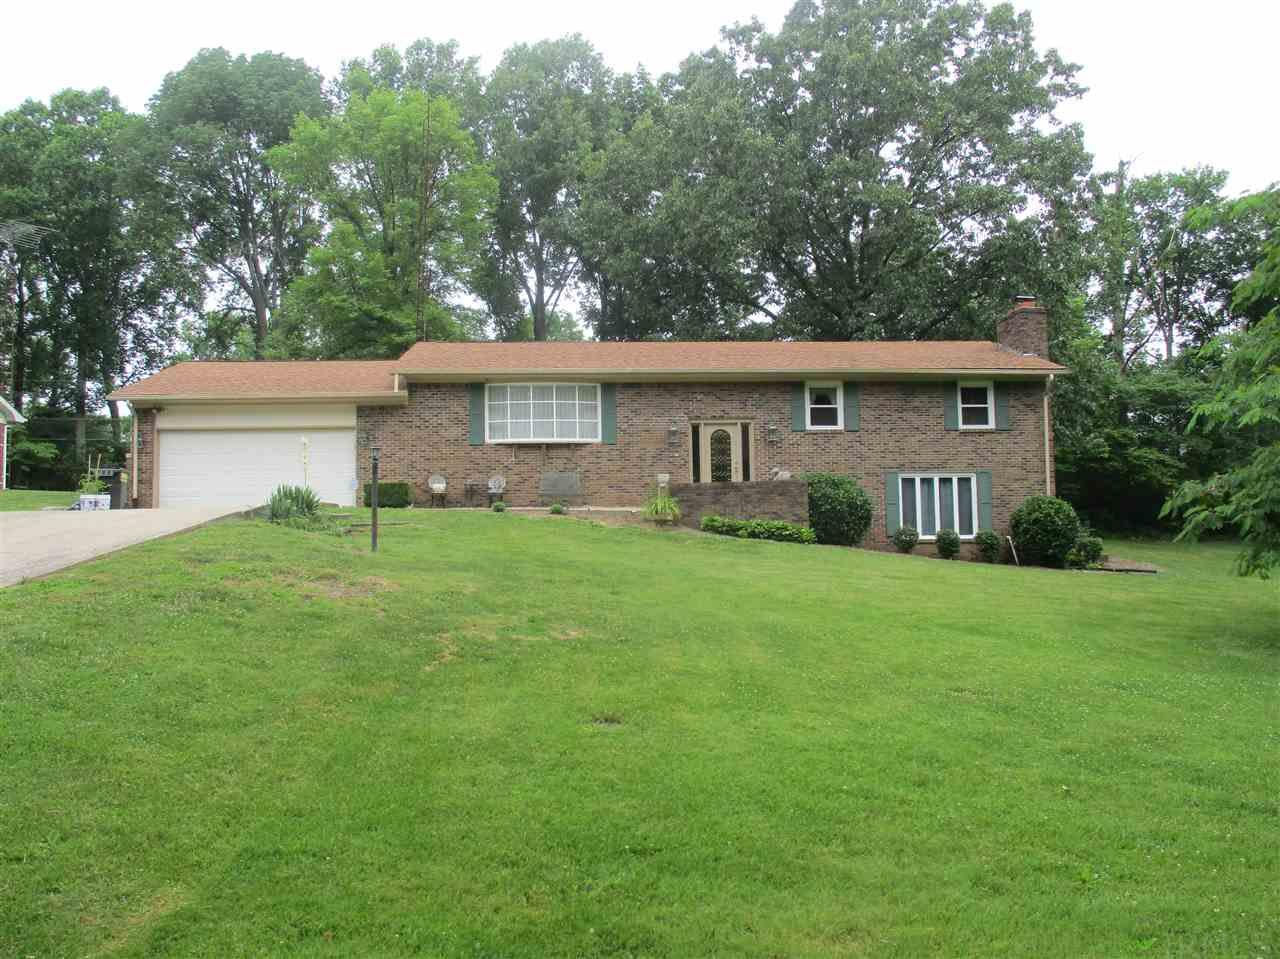 97 SOUTH HILL DR, Bedford, IN 47421